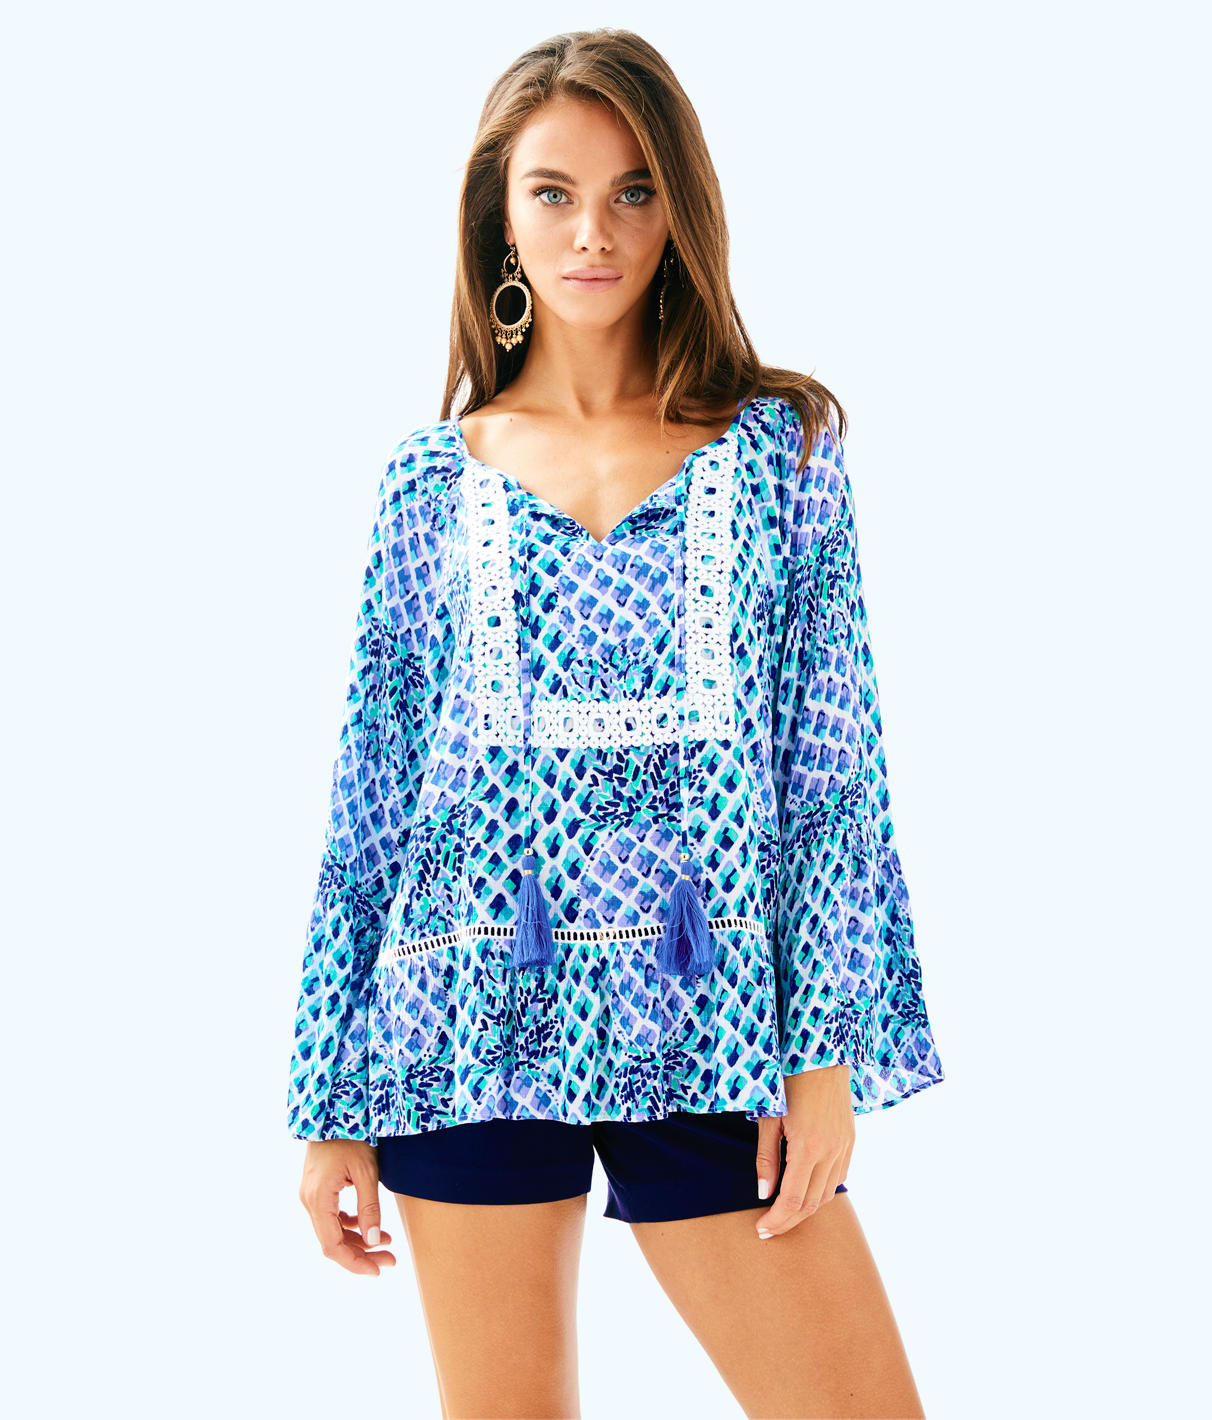 Lilly Pulitzer Lilly Pulitzer Womens Amisa Top